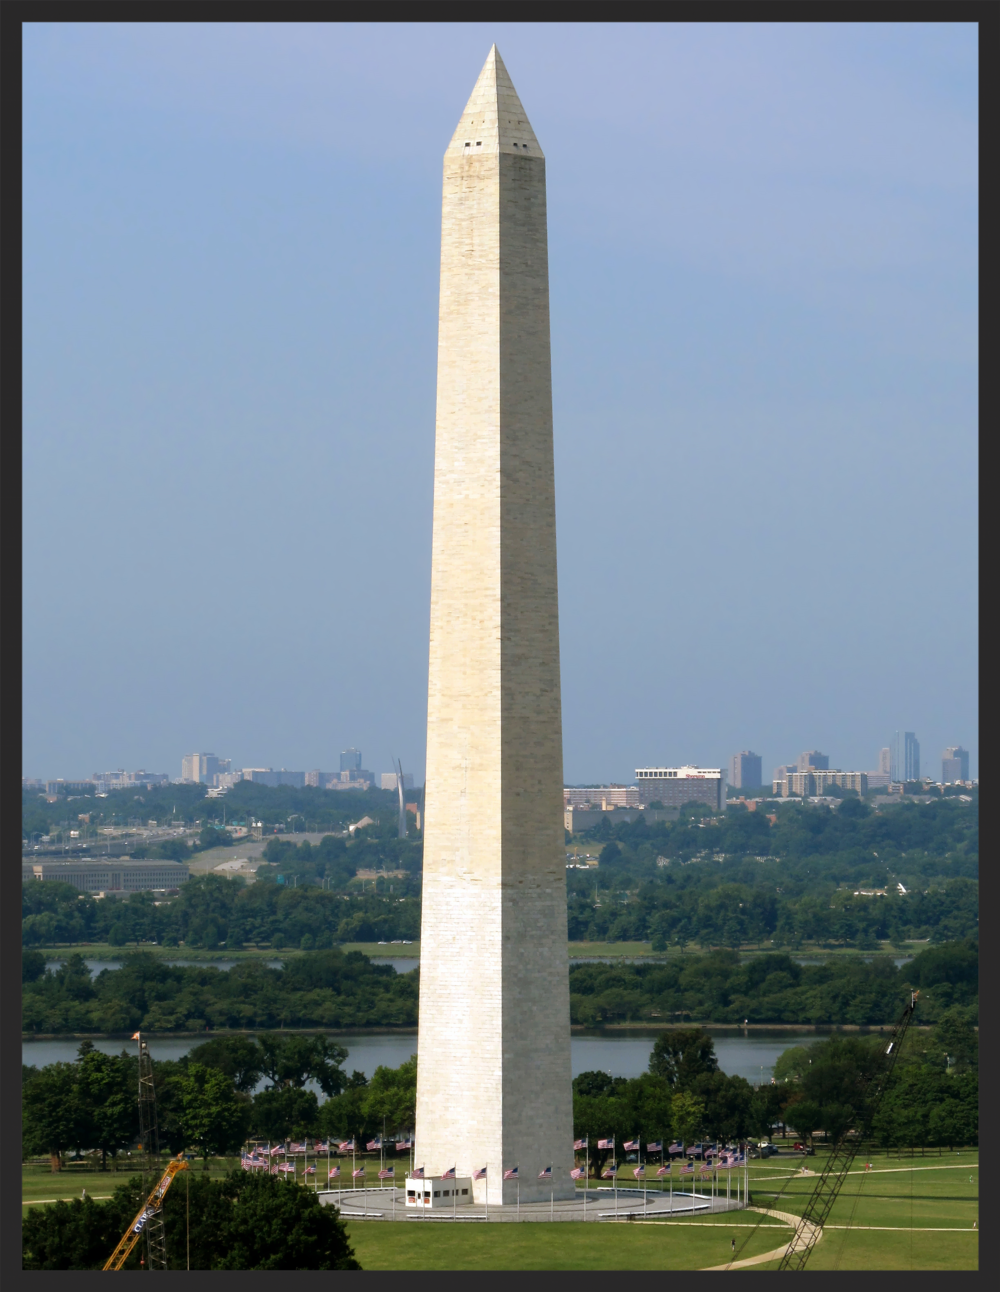 The Washington Monument was completed in 1884 and opened to the public in 1885.